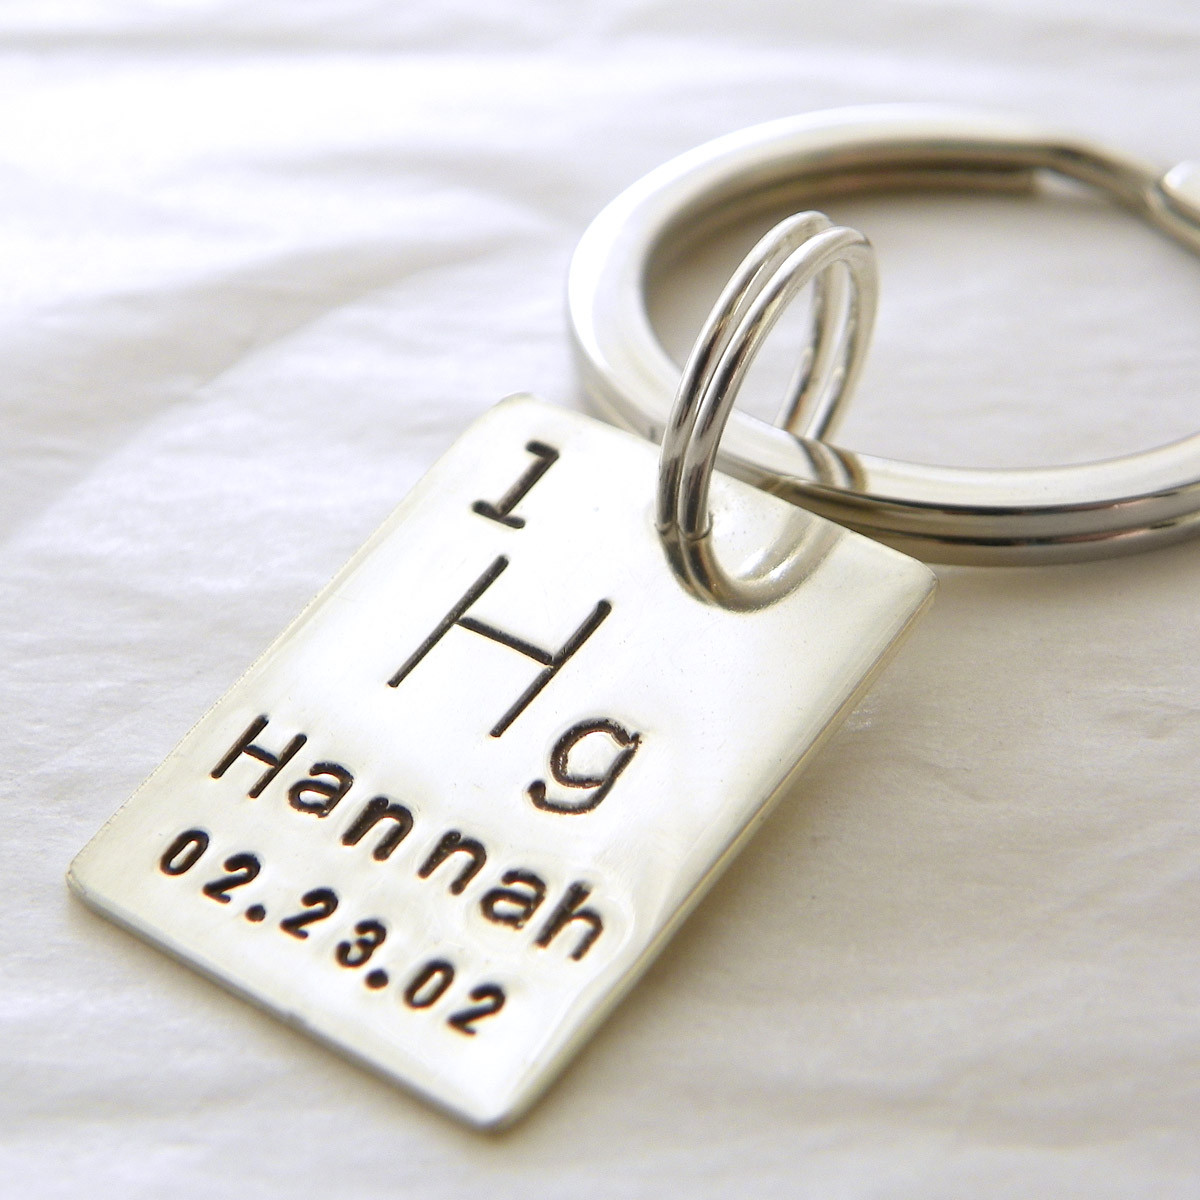 Personalized periodic table atomic element sterling silver key chain personalized periodic table atomic element hand stamped sterling silver key chain gamestrikefo Image collections